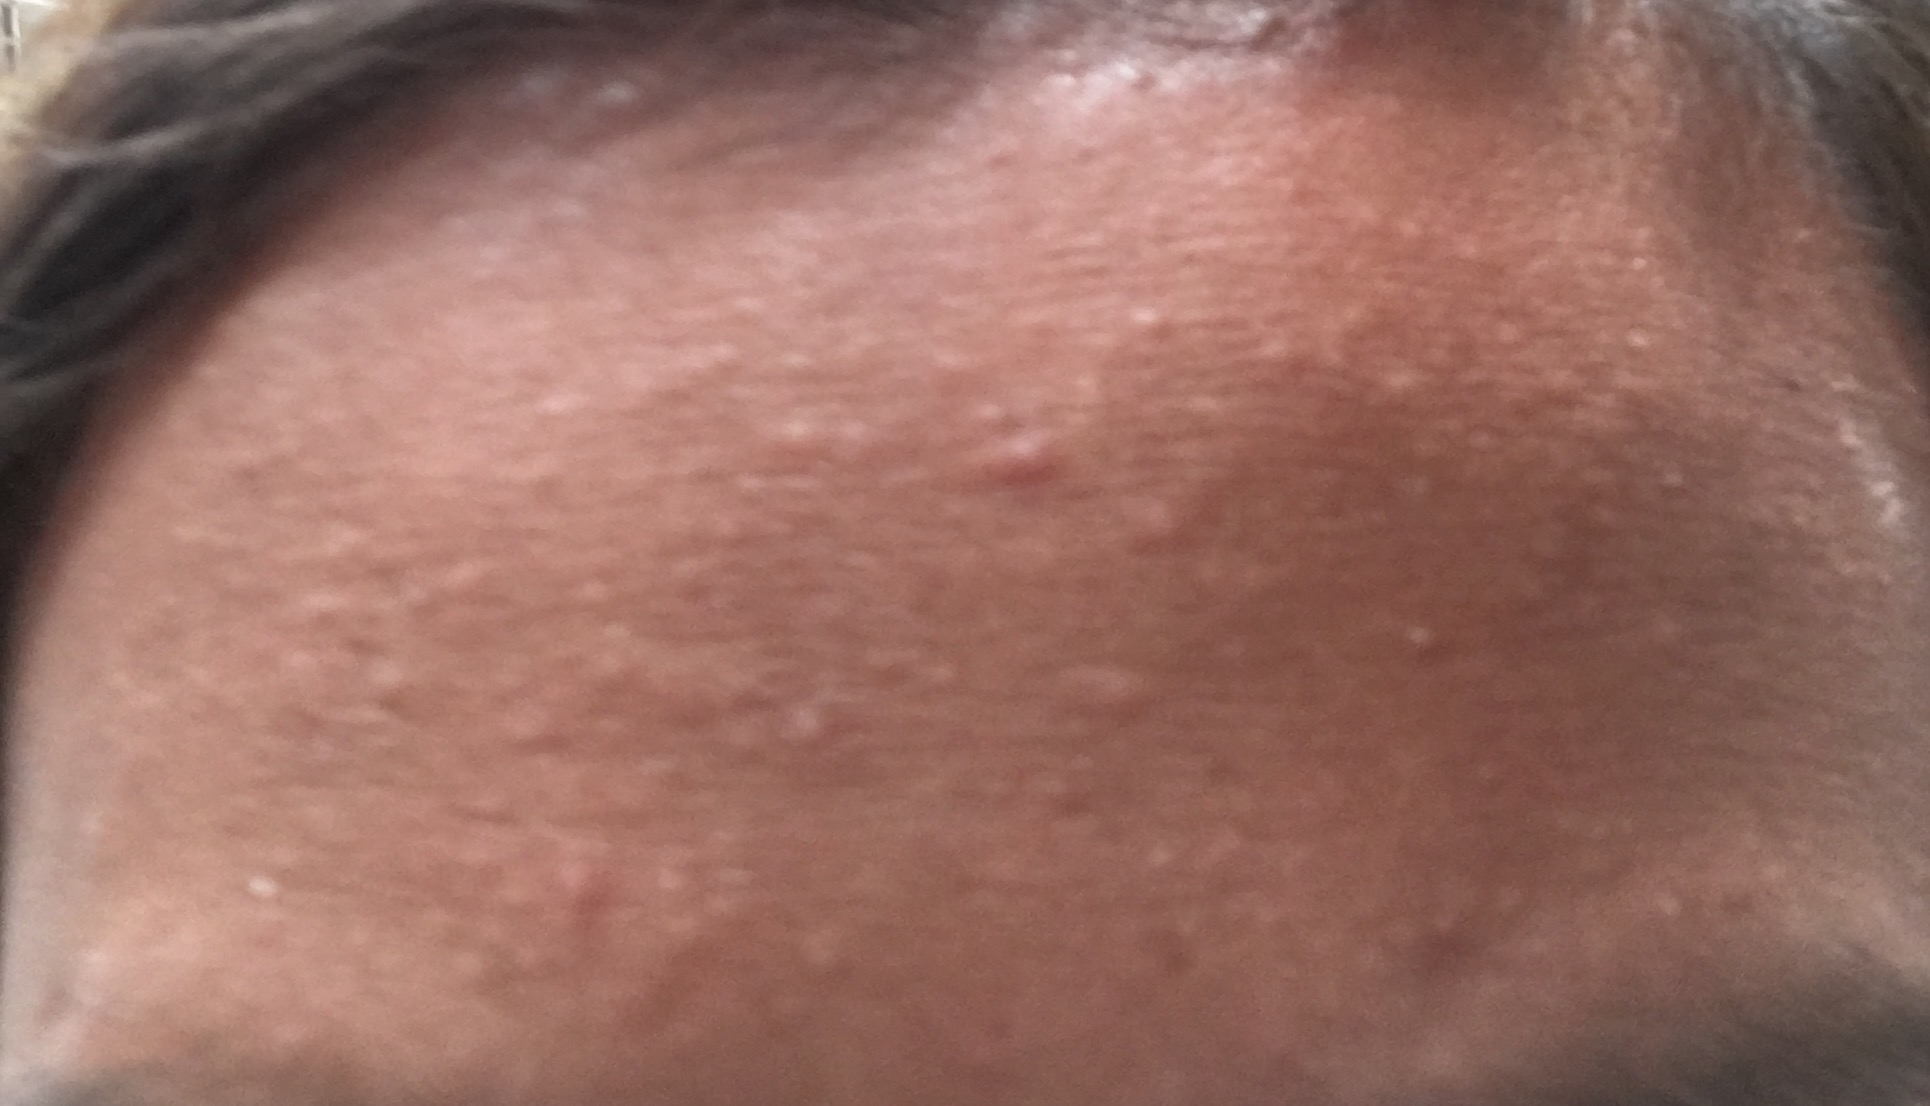 Small bumps on forehead? - General acne discussion - Acne ...